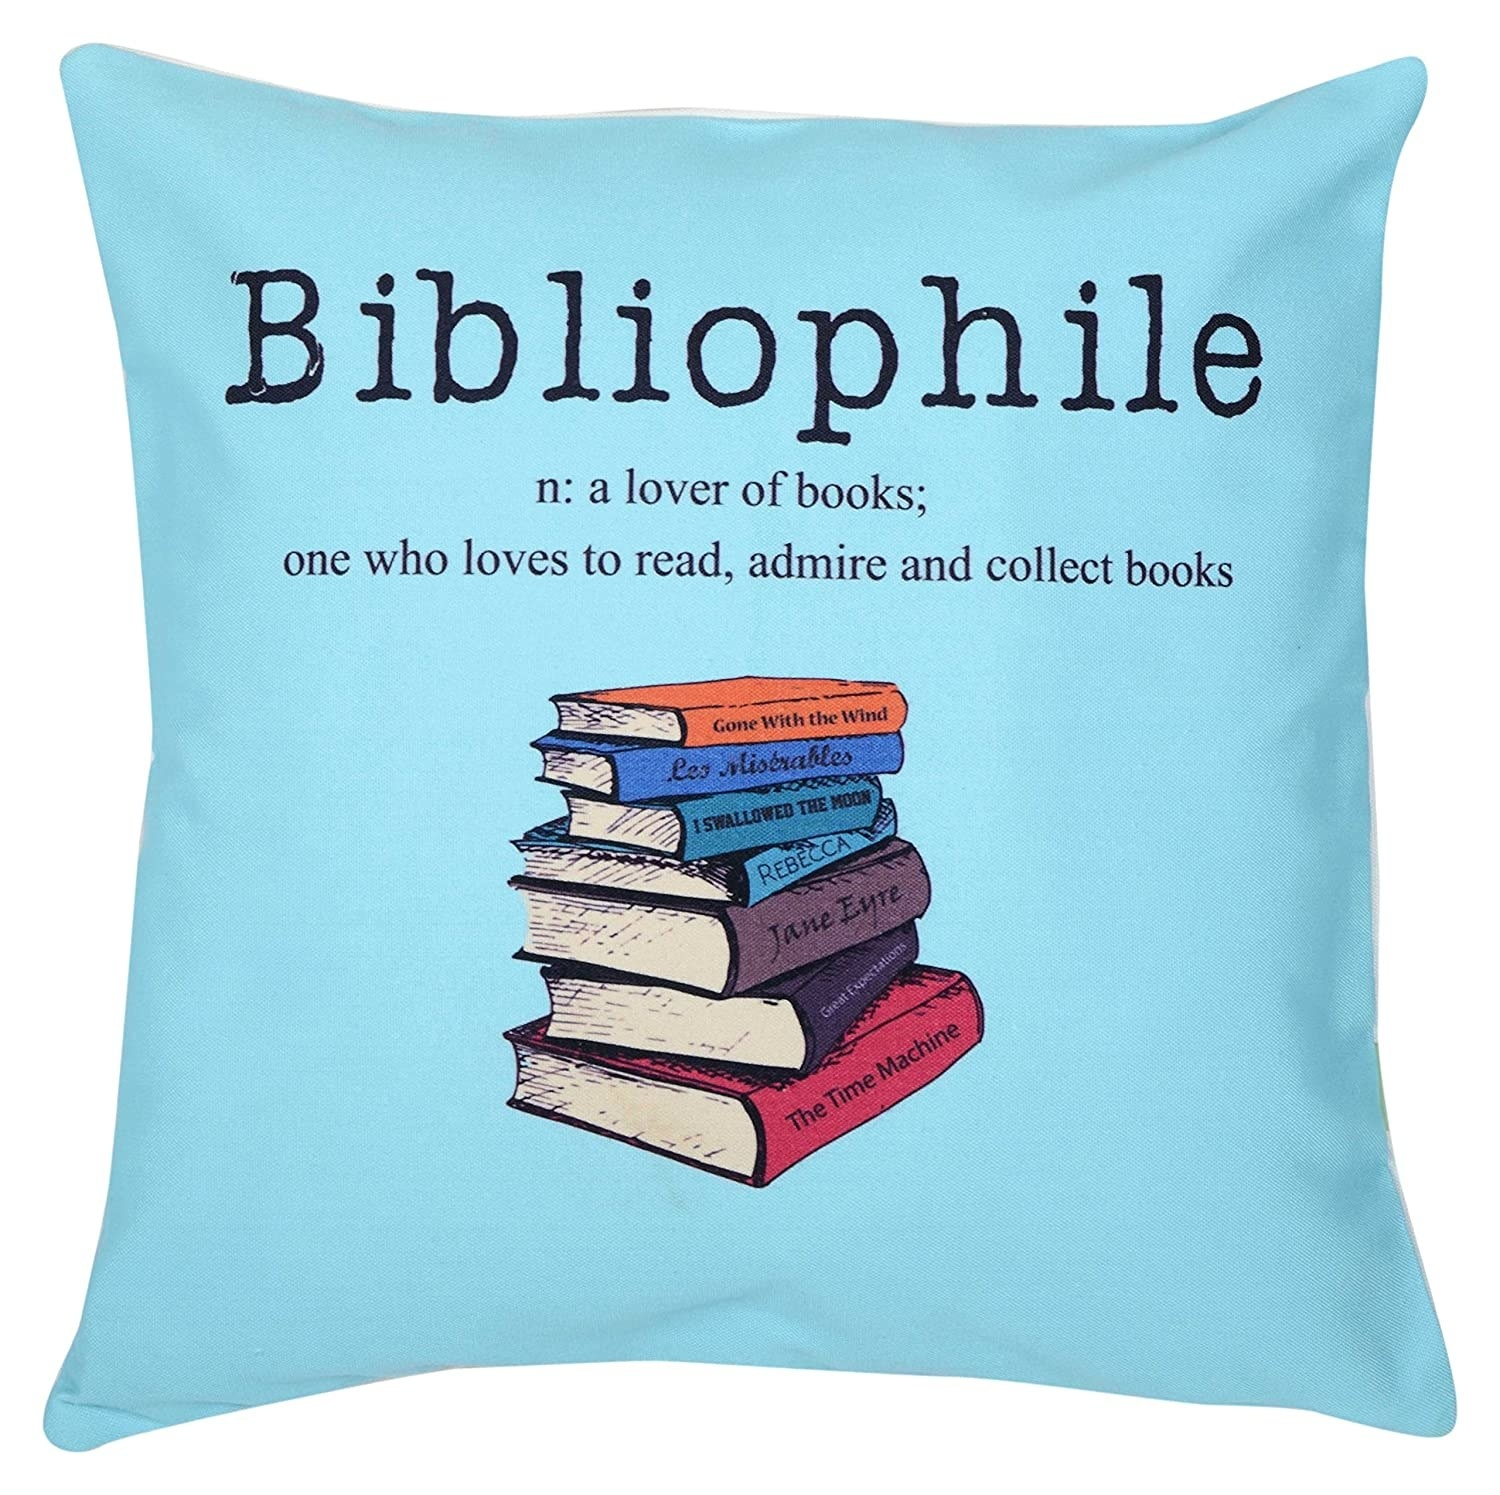 A light blue canvas cushion cover with the definition of bibliophile and a few books printed on it.